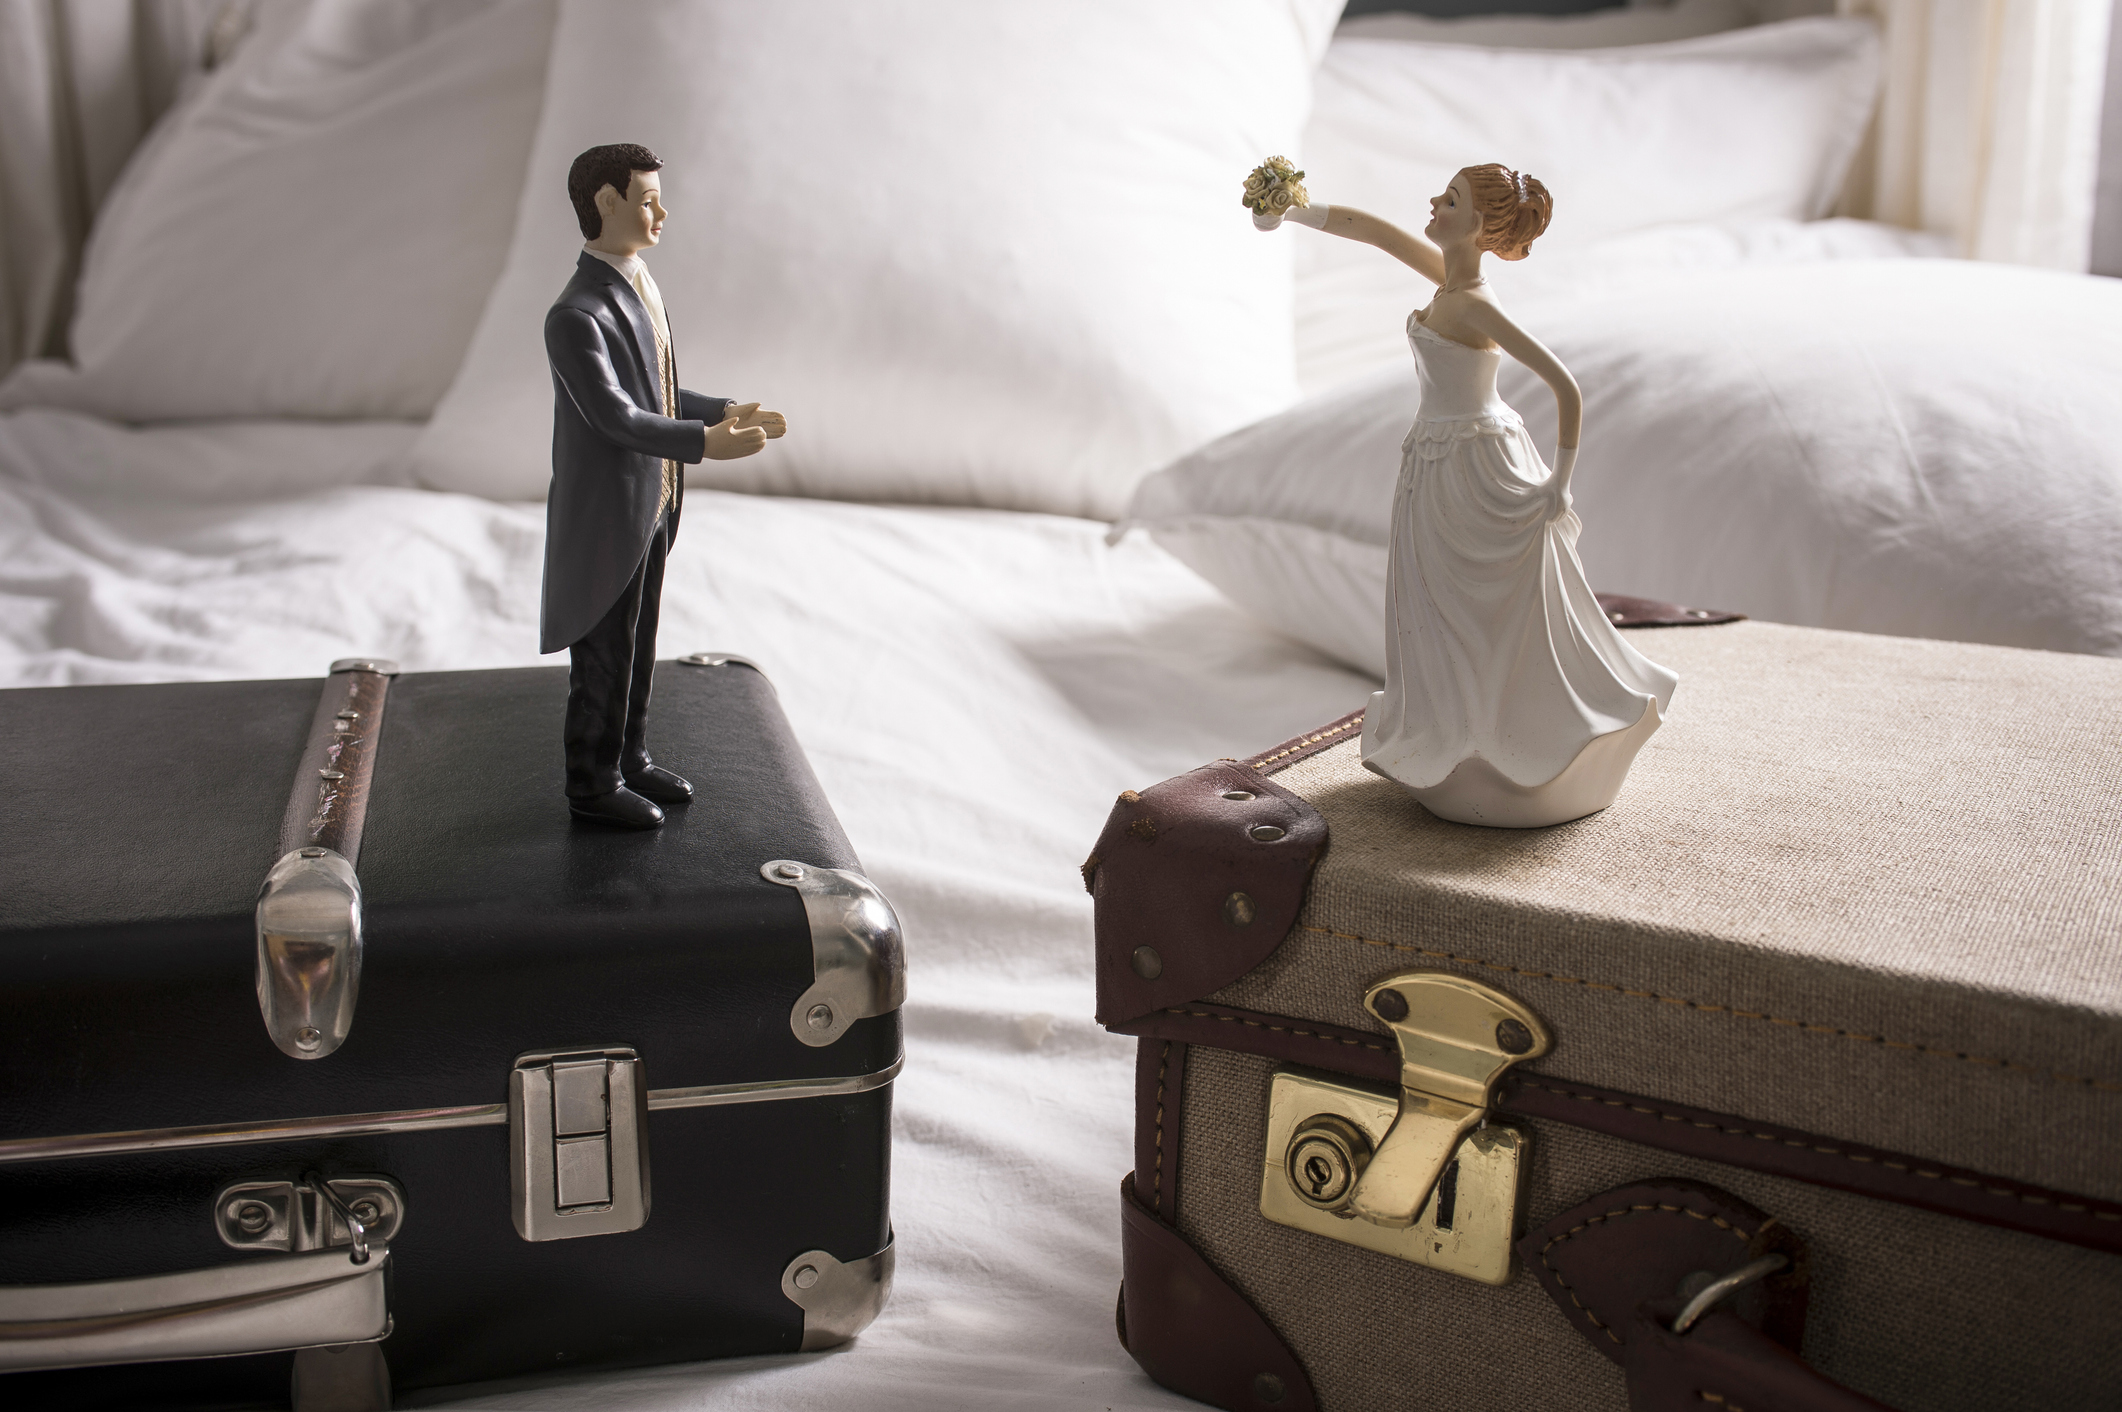 wedding-figurines-on-separate-suitcasesjpg